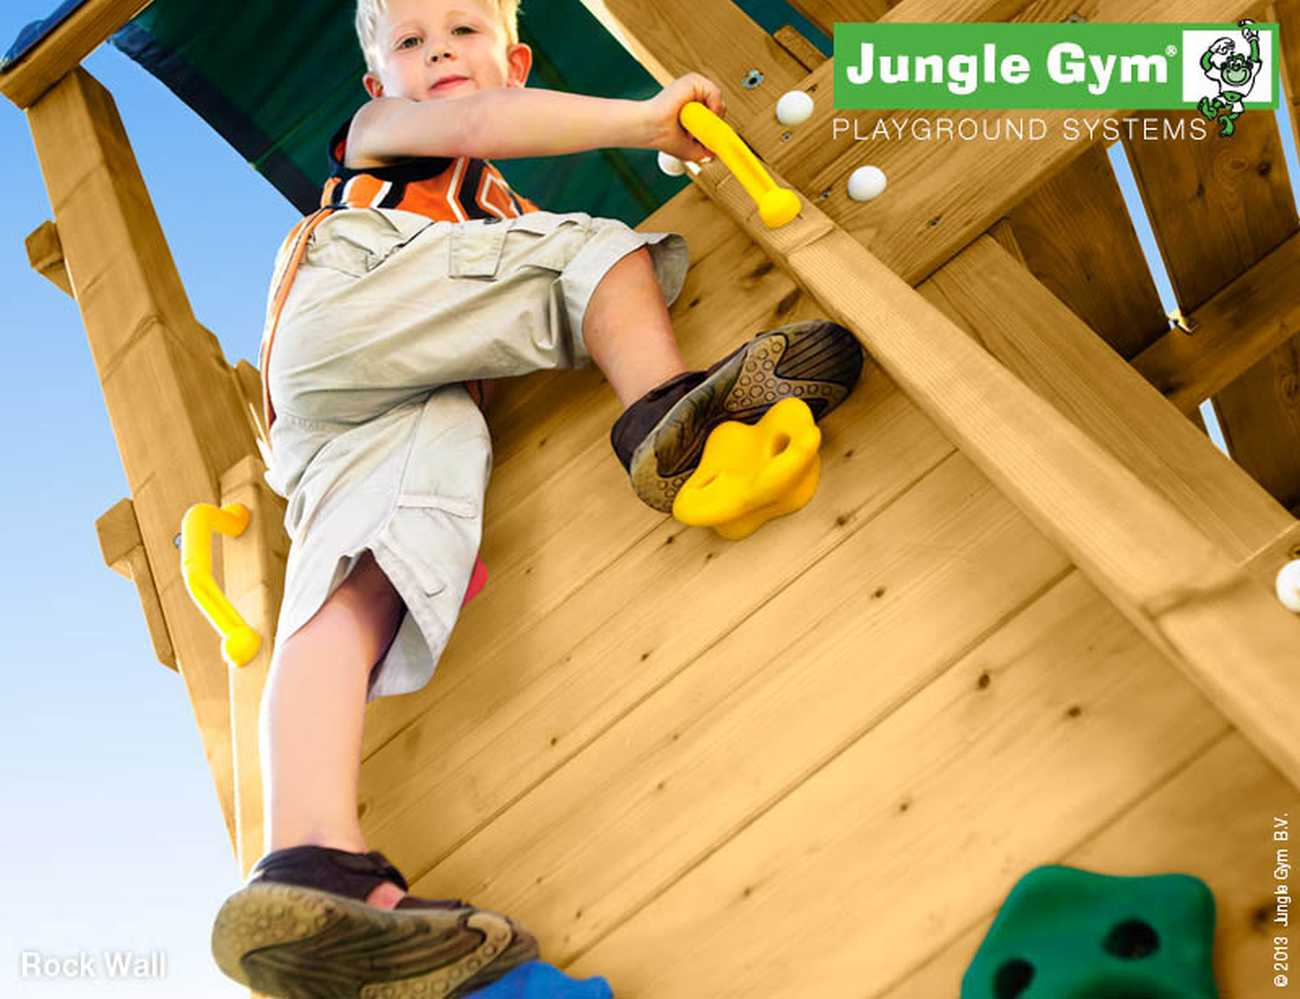 wooden-climbing-frame-accessories-rock-wall-3rvHPWa3YSgUjr